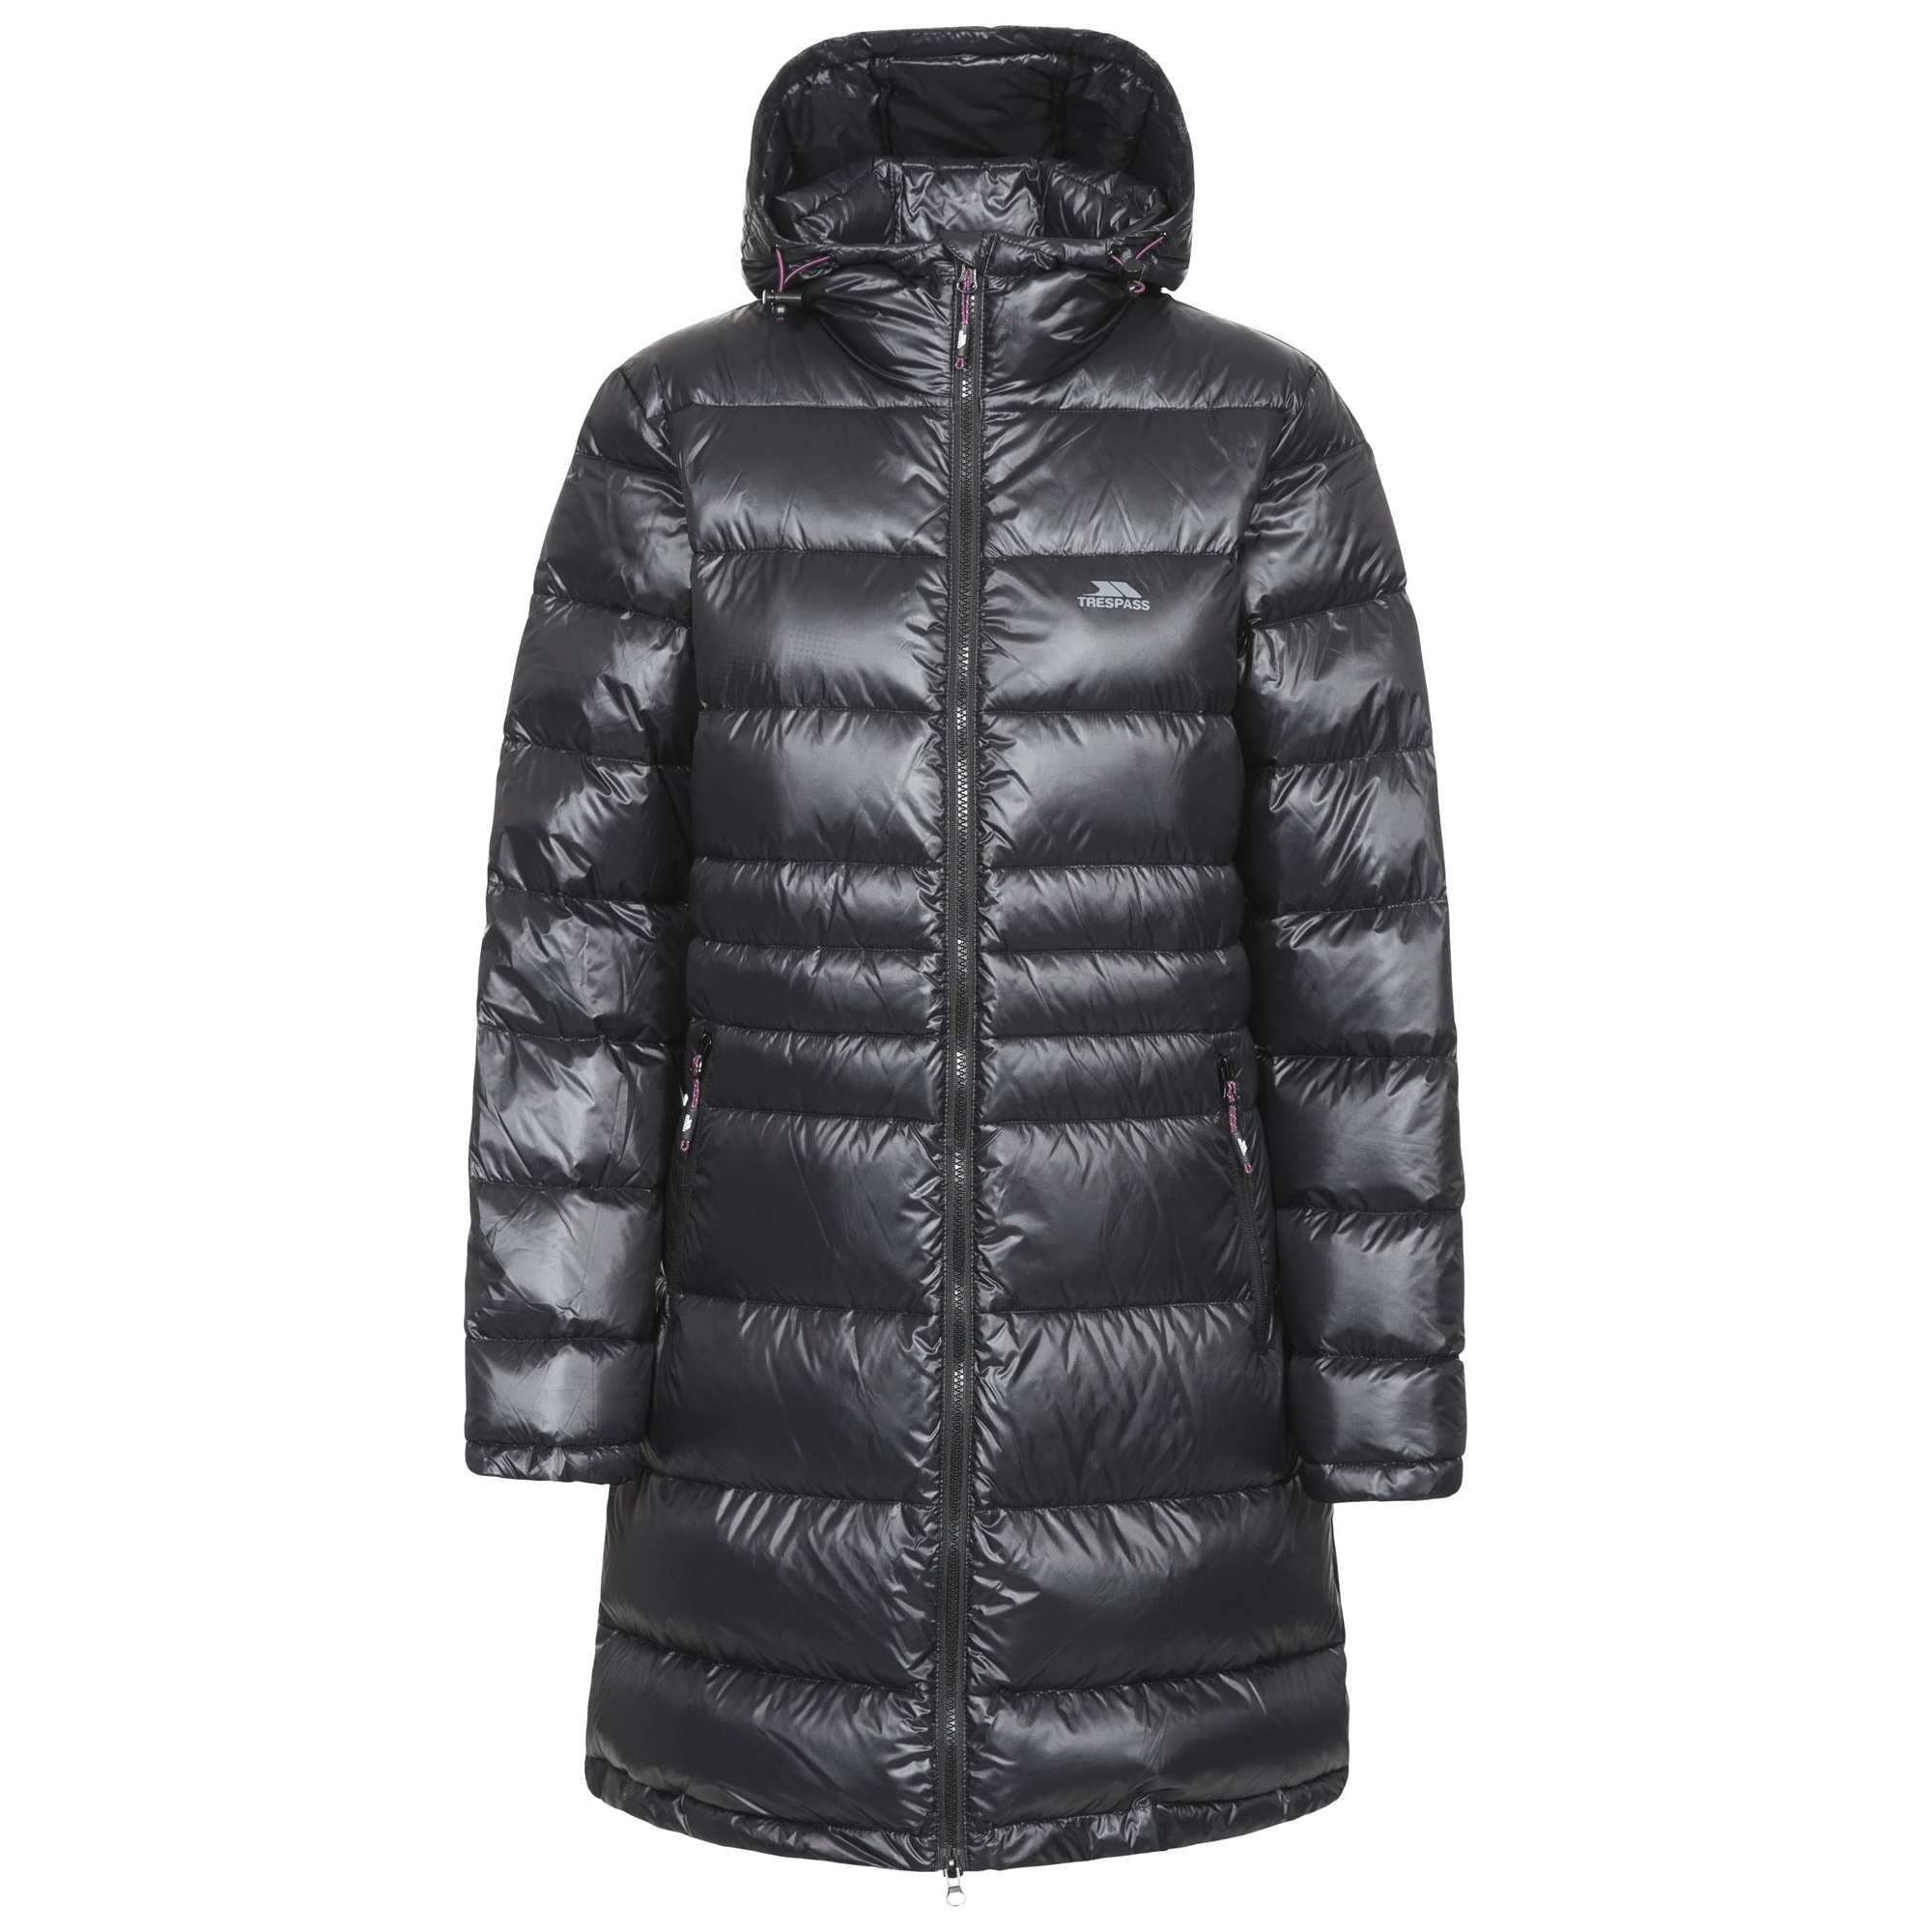 Trespass Winterjacke Damen Daunenjacke Marge